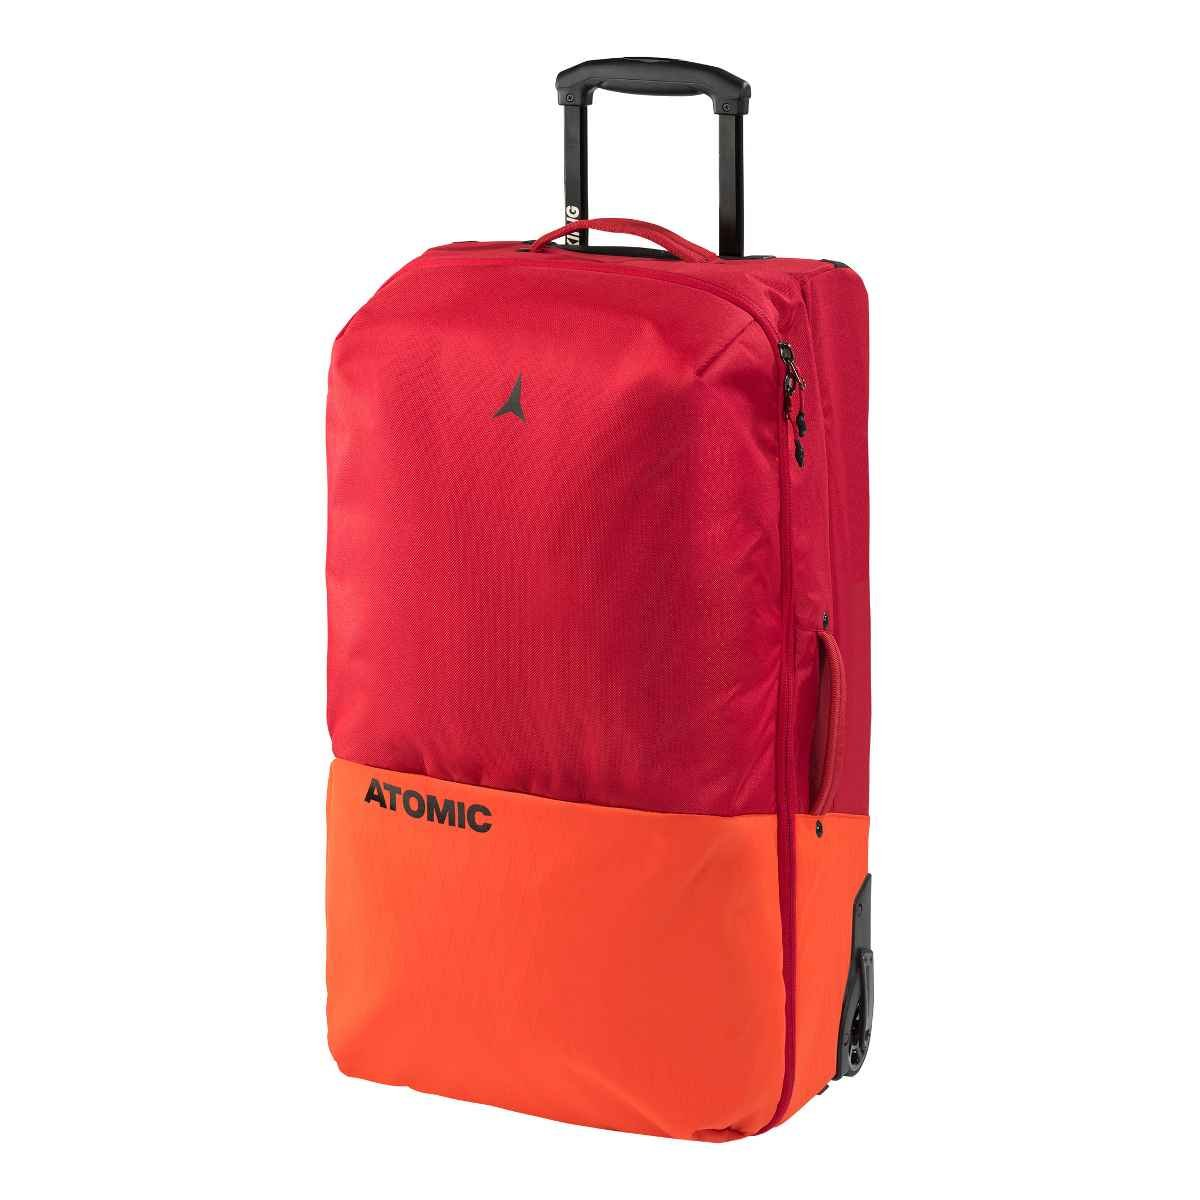 Atomic Unisex Trolley 90L - AL5037610 (Red/Bright Red - One Size)